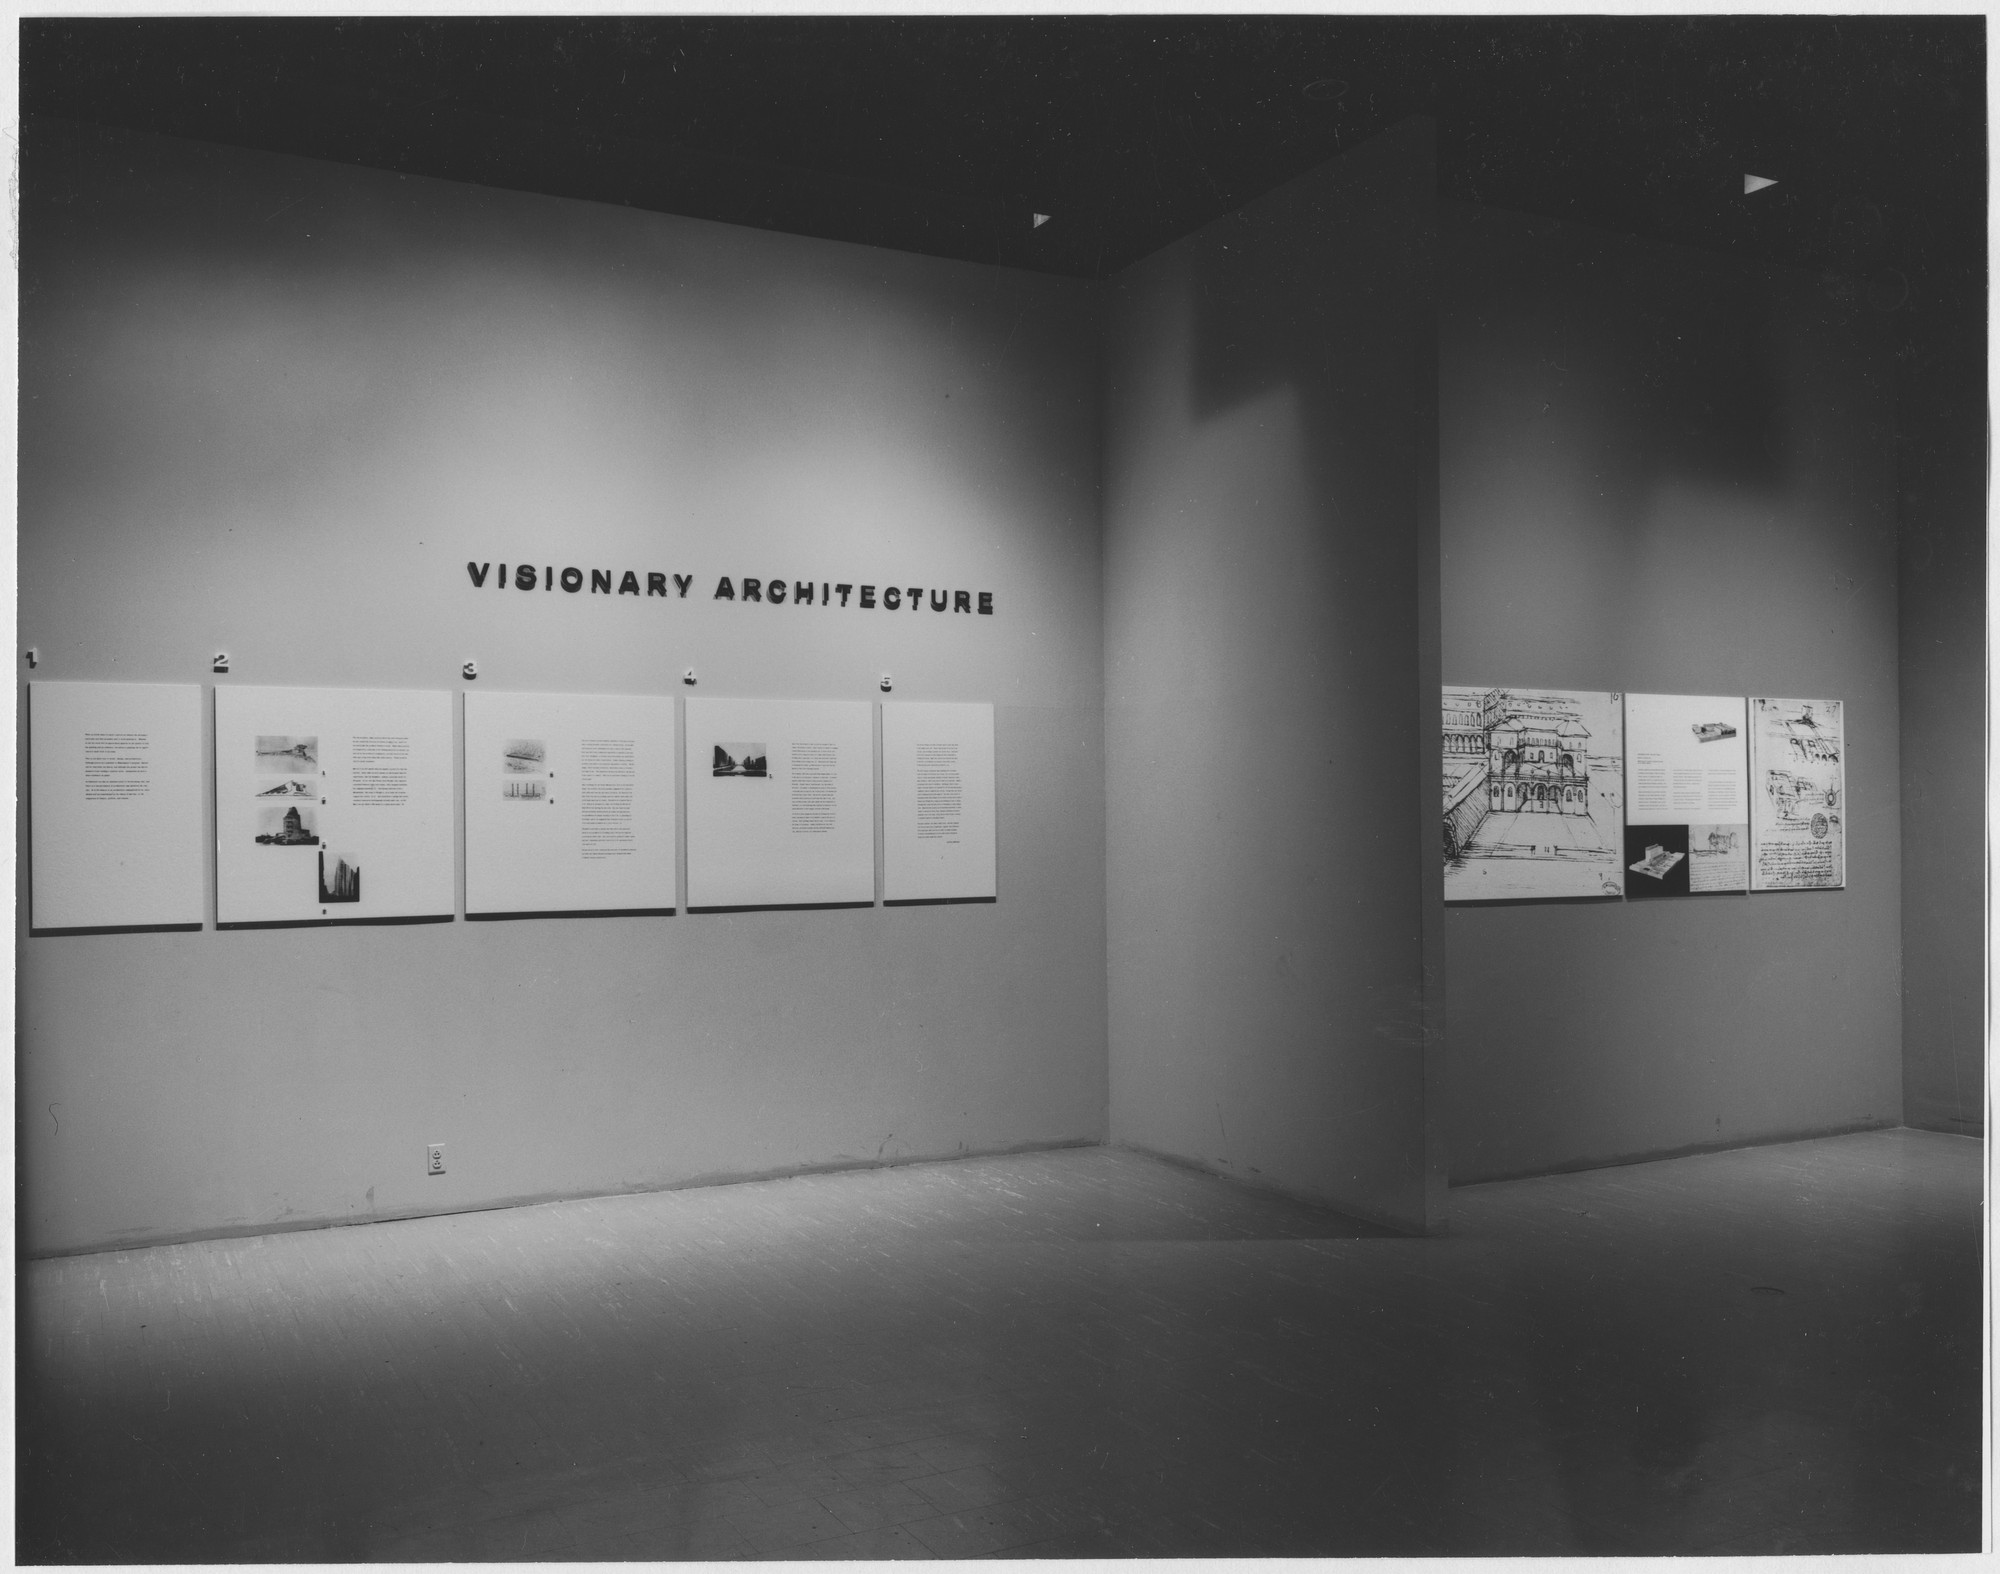 "Installation view of the exhibition, ""Visionary Architecture."" September 29, 1960–December 4, 1960. Photographic Archive. The Museum of Modern Art Archives, New York. IN670.1. Photograph by George Barrows."